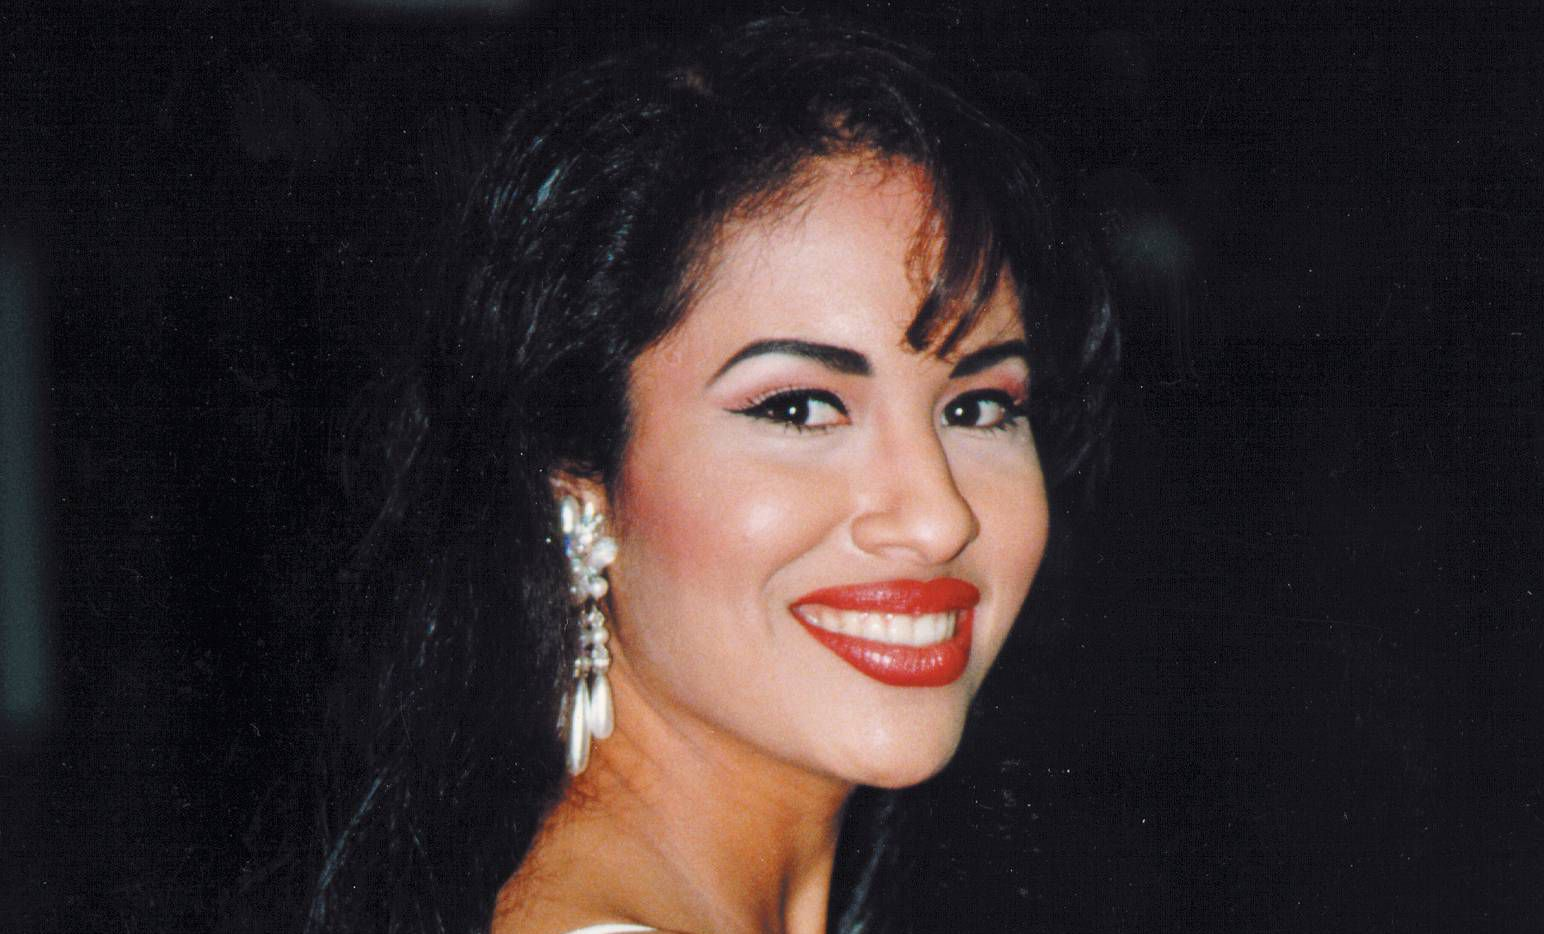 20 Years Later Selenas Father Has Mixed Feelings About Fans